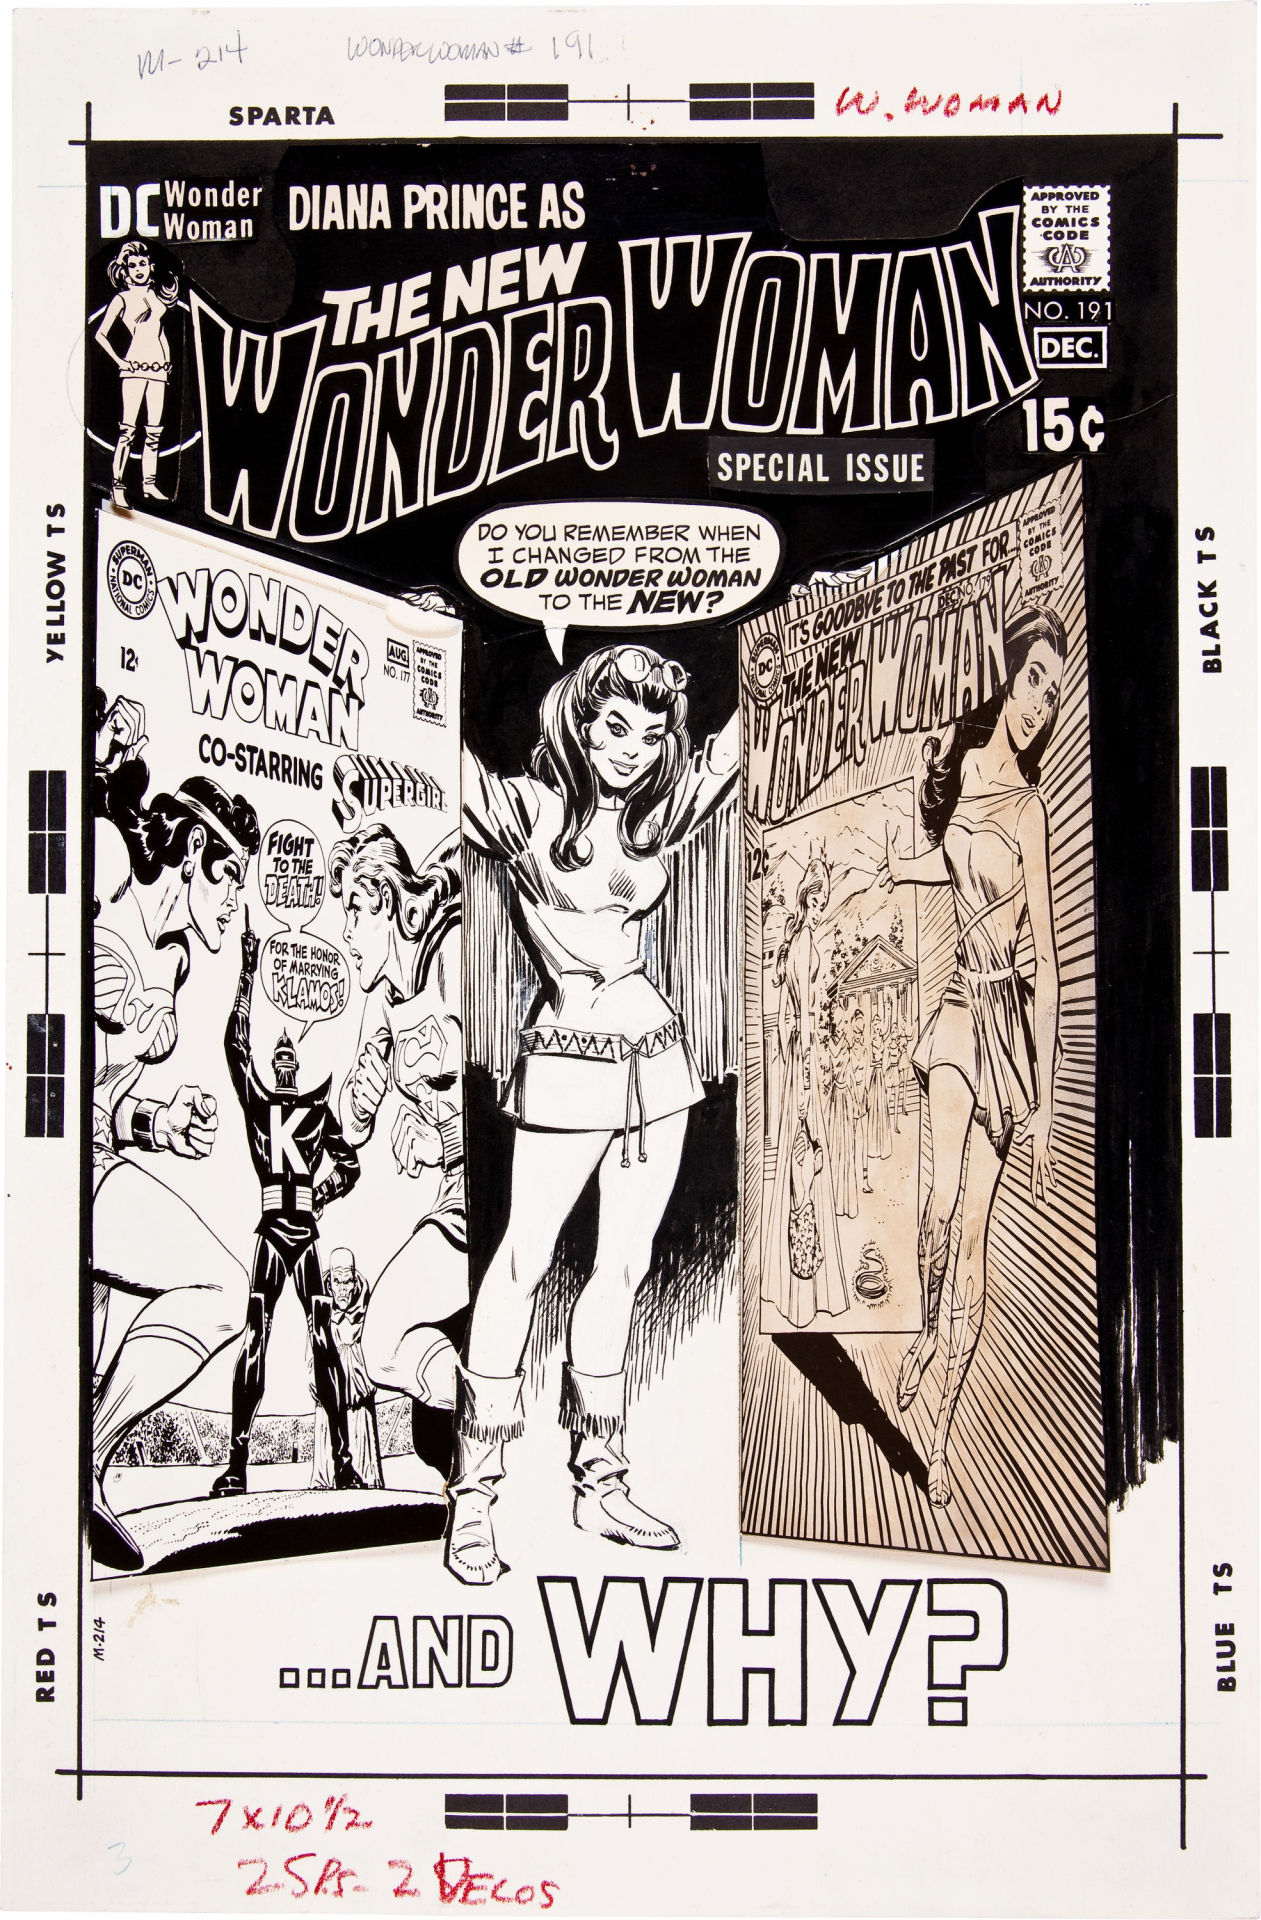 Original cover art by Mike Sekowsky (pencils) and Dick Giordano (inks) from Wonder Woman #191, November 1970